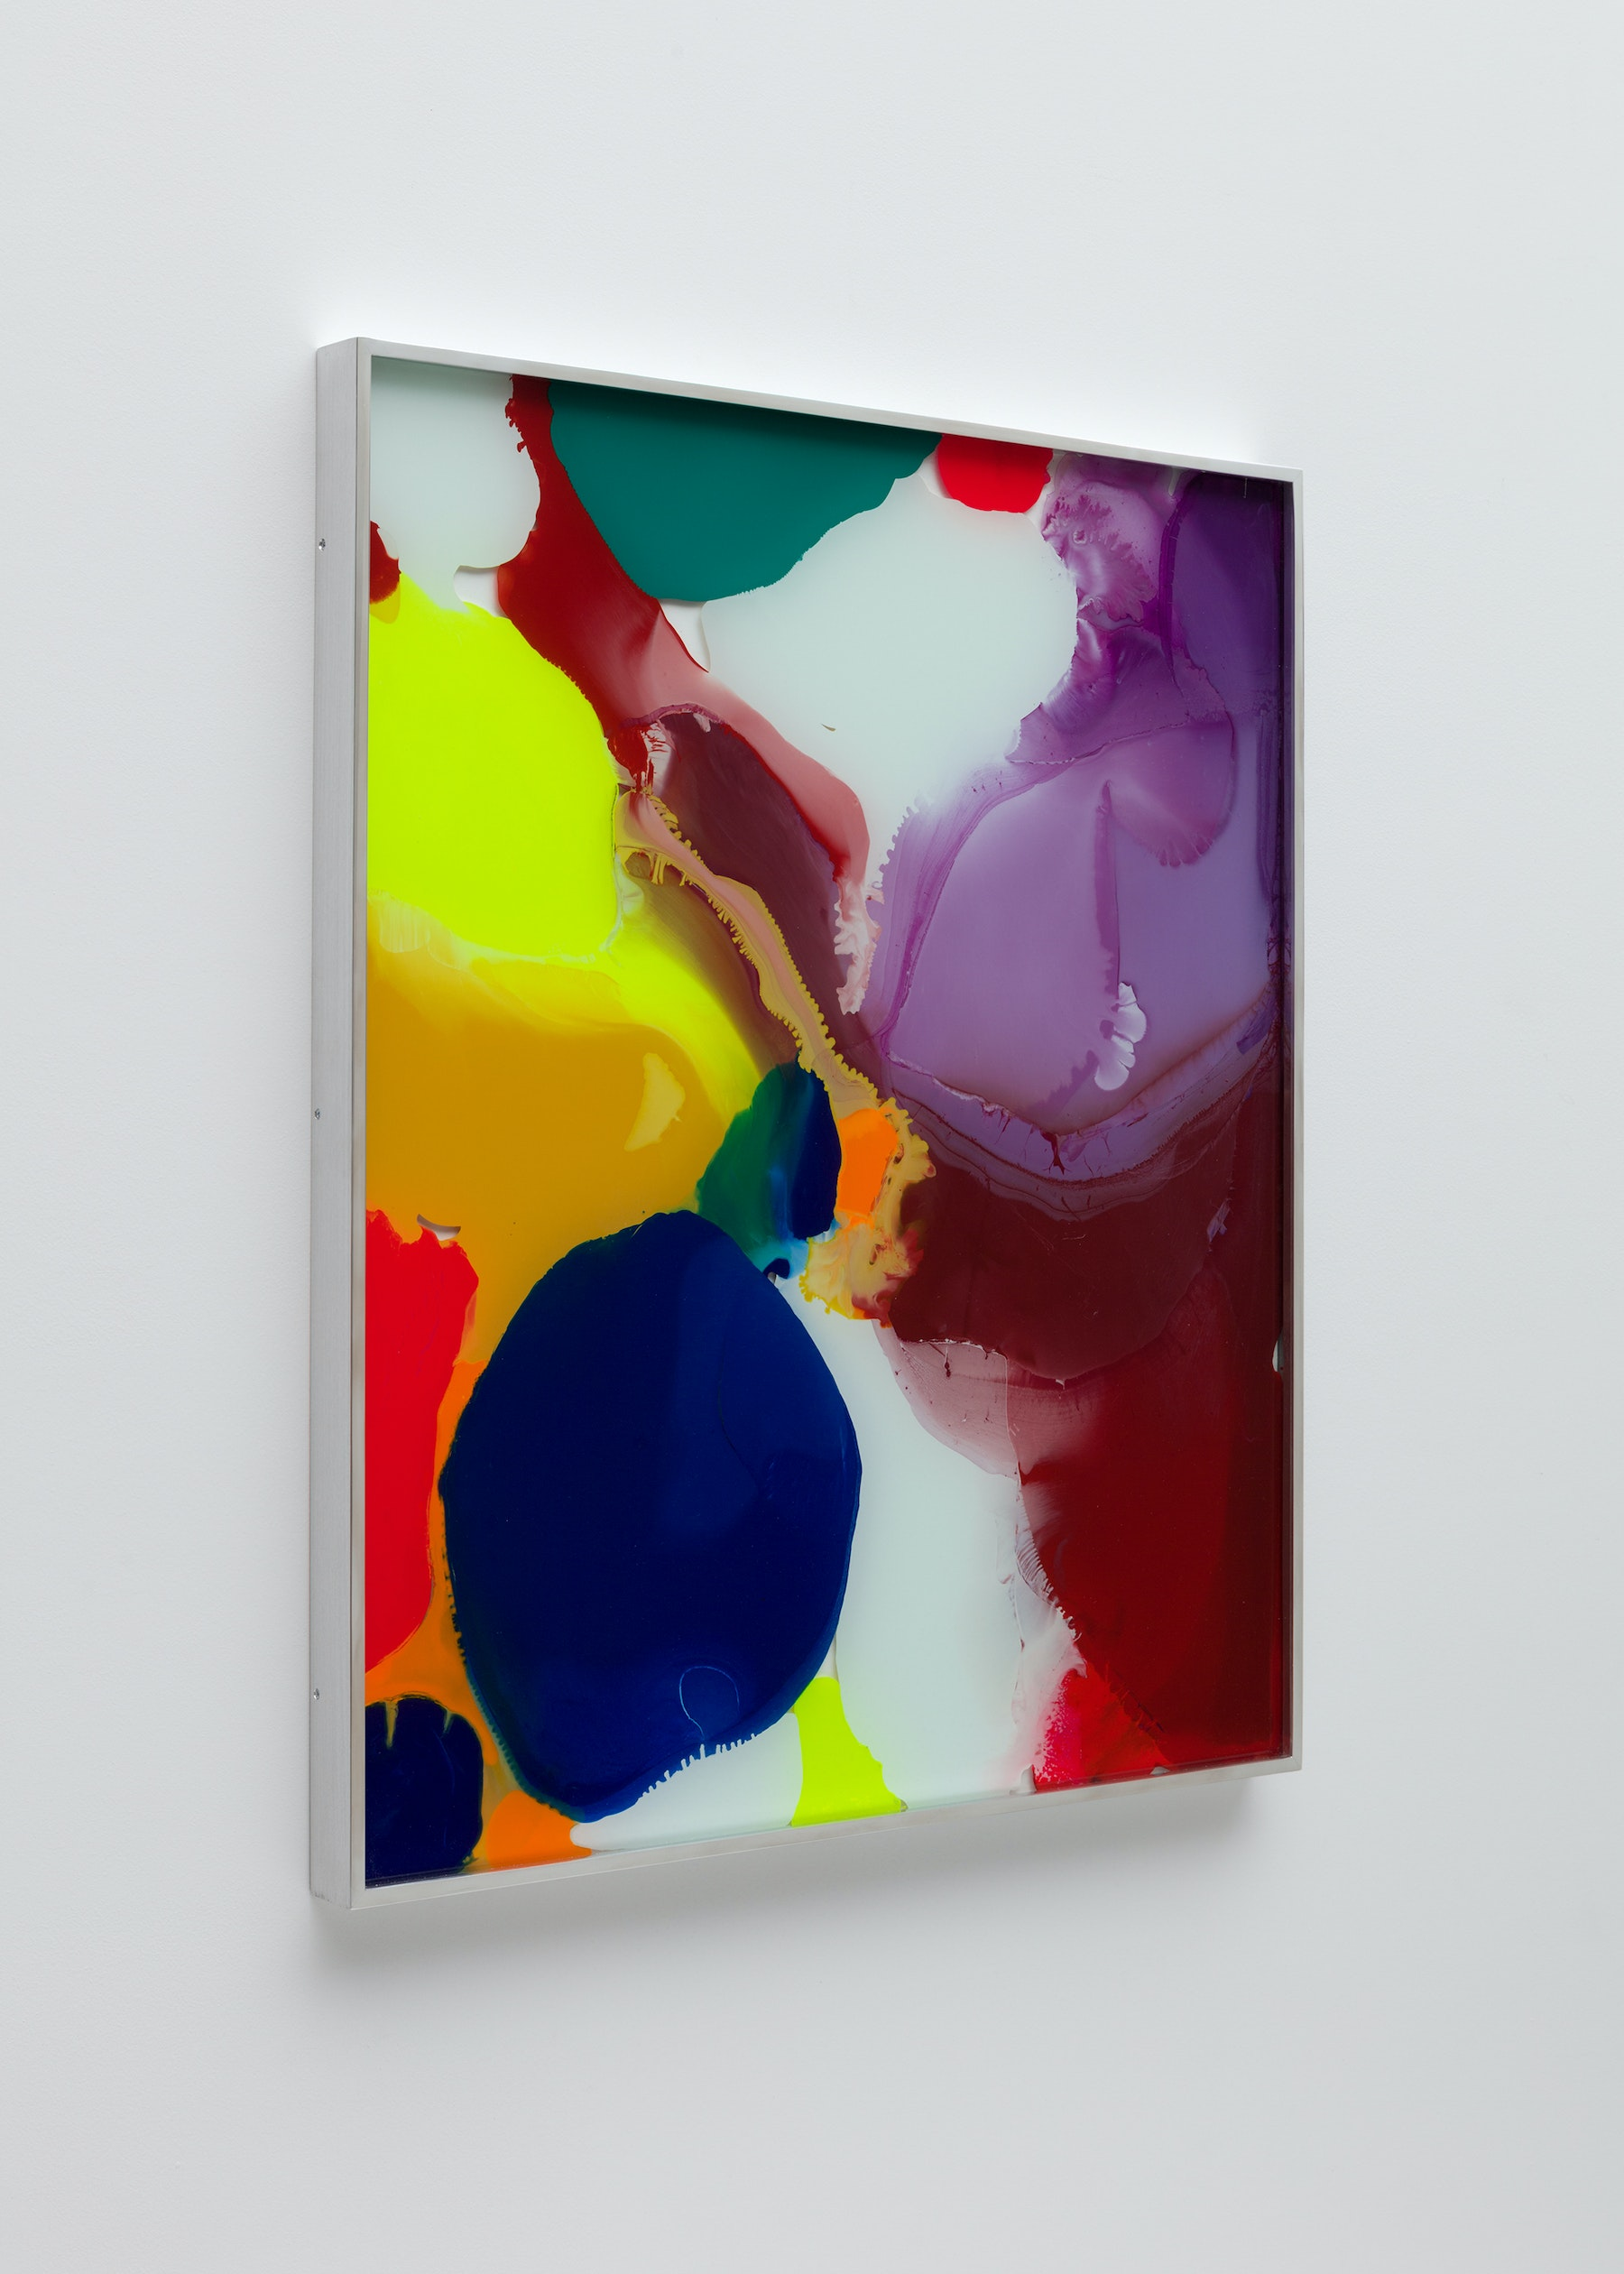 "Yunhee Min ""Up Close in Distance (variation study c2),"" 2018 Enamel on laminated glass 30.75 x 25.75"" [HxW] (78.11 x 65.41 cm) Inventory #MIN339 Courtesy of the artist and Vielmetter Los Angeles Photo credit: Brica Wilcox"